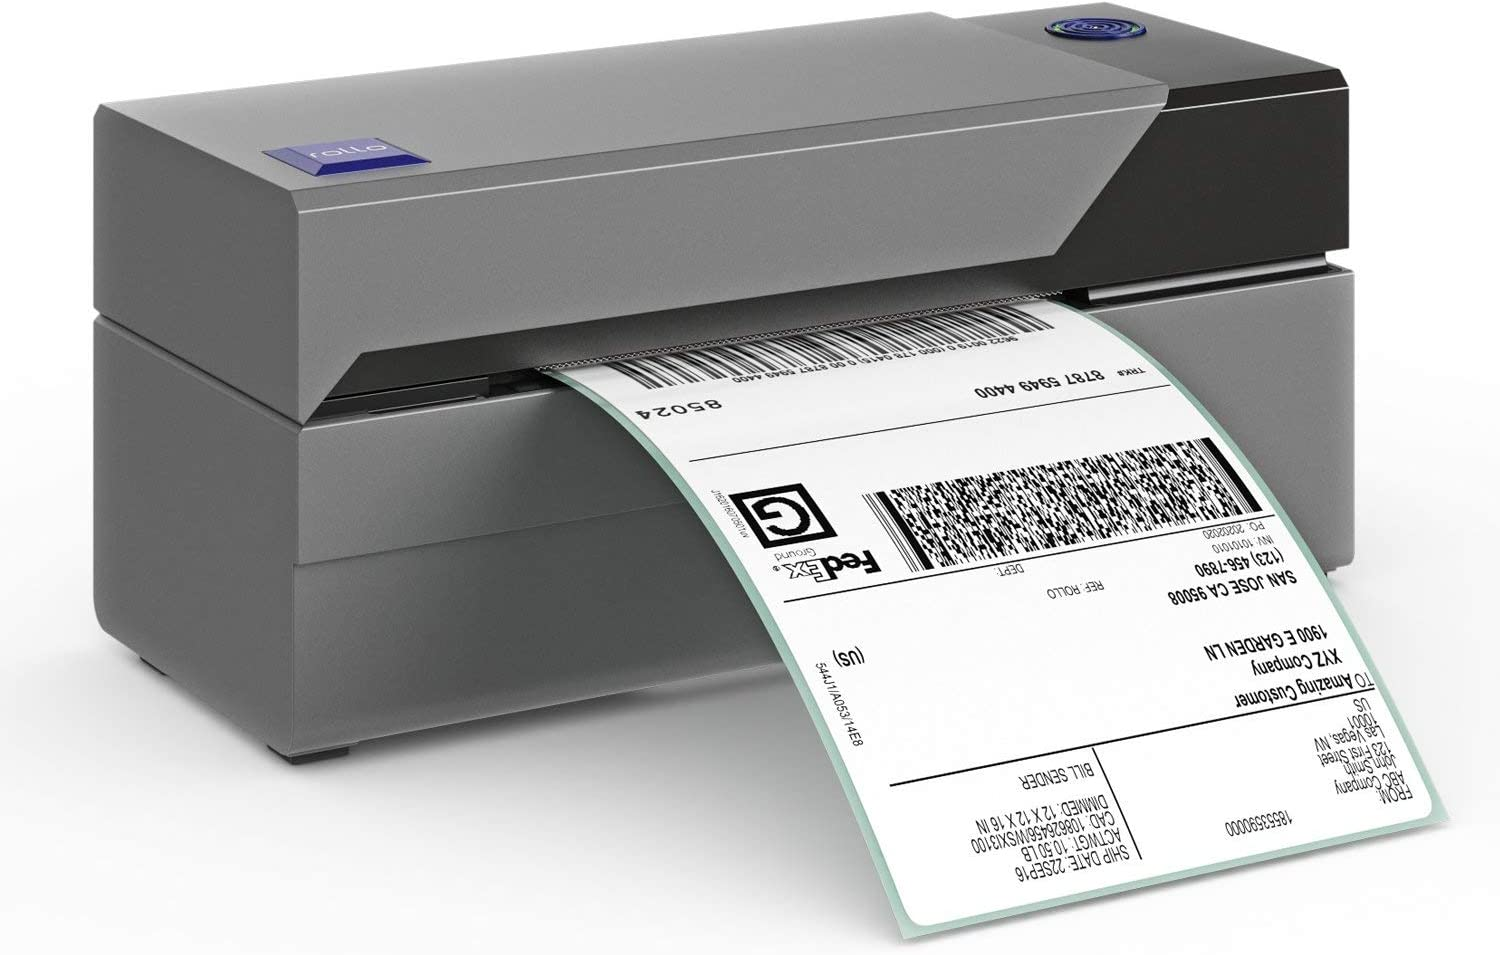 Rollo Label Printer – Commercial Grade Direct Thermal High Speed Printer – Compatible with Amazon, Ebay, Etsy, Shopify – 4×6 Label Printer (Renewed)